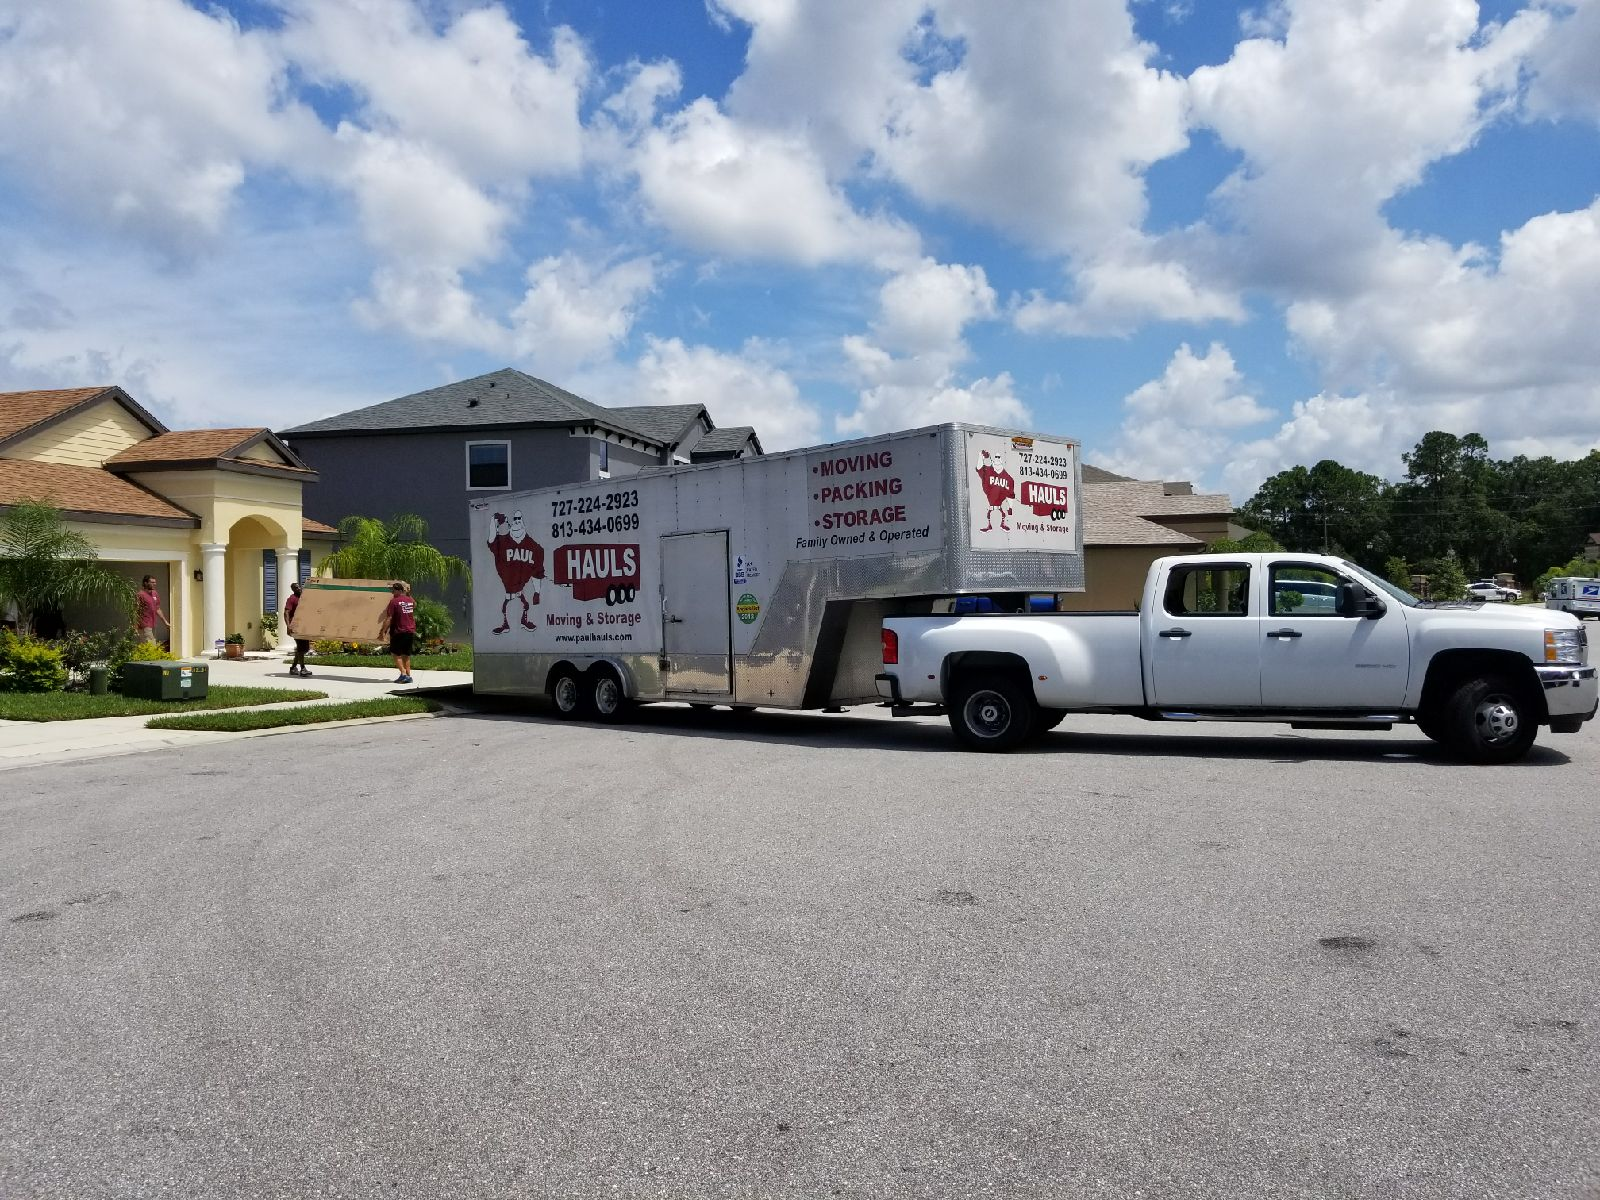 Loading up the truck in Westchase Florida